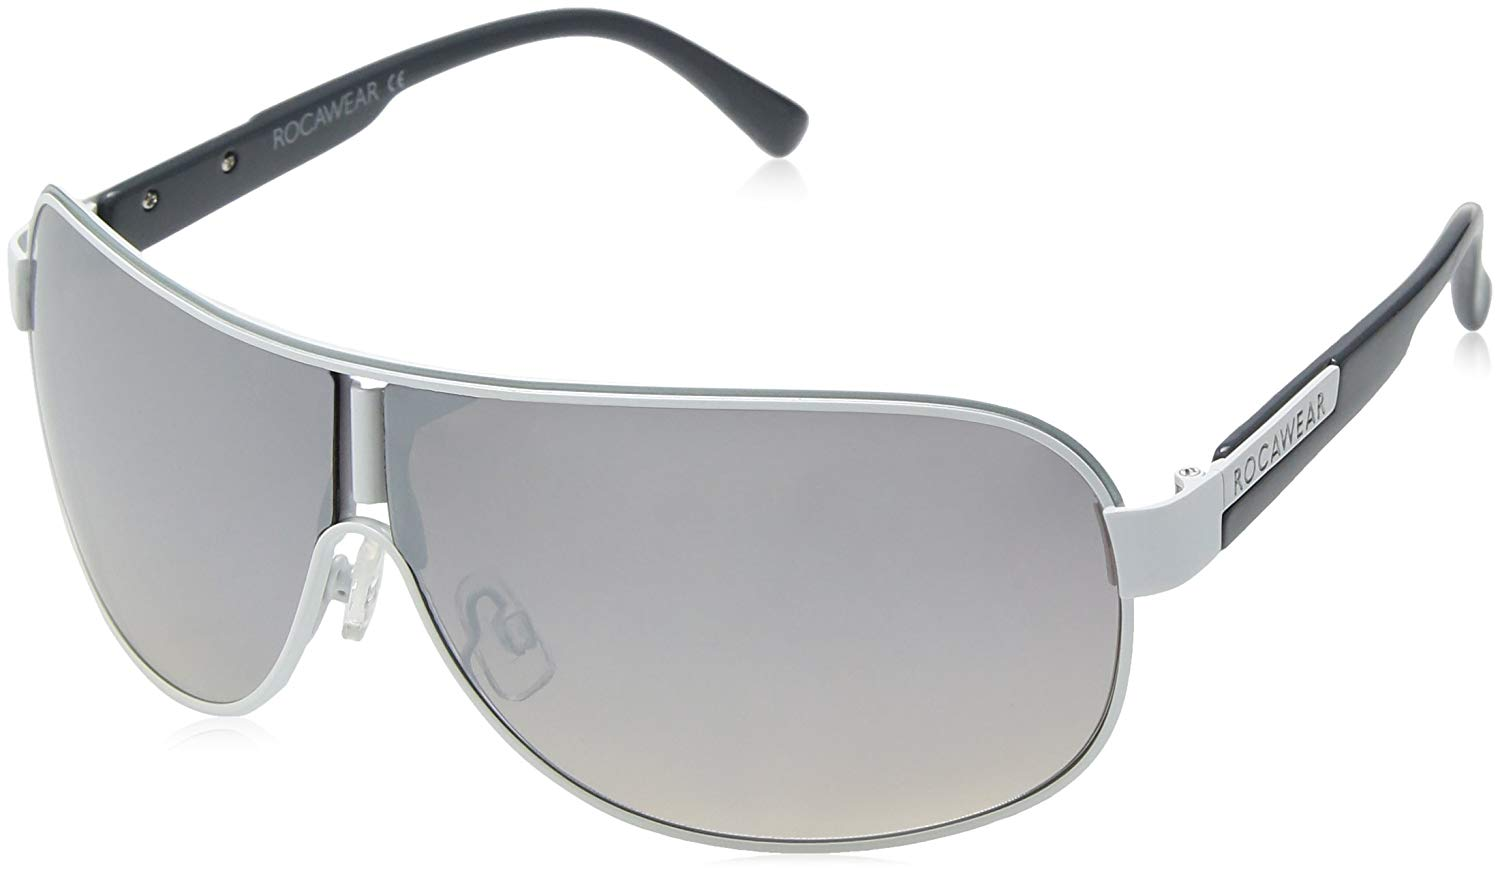 1767e6eac810a Get Quotations · Rocawear Men s R1396 Whslv Shield Sunglasses